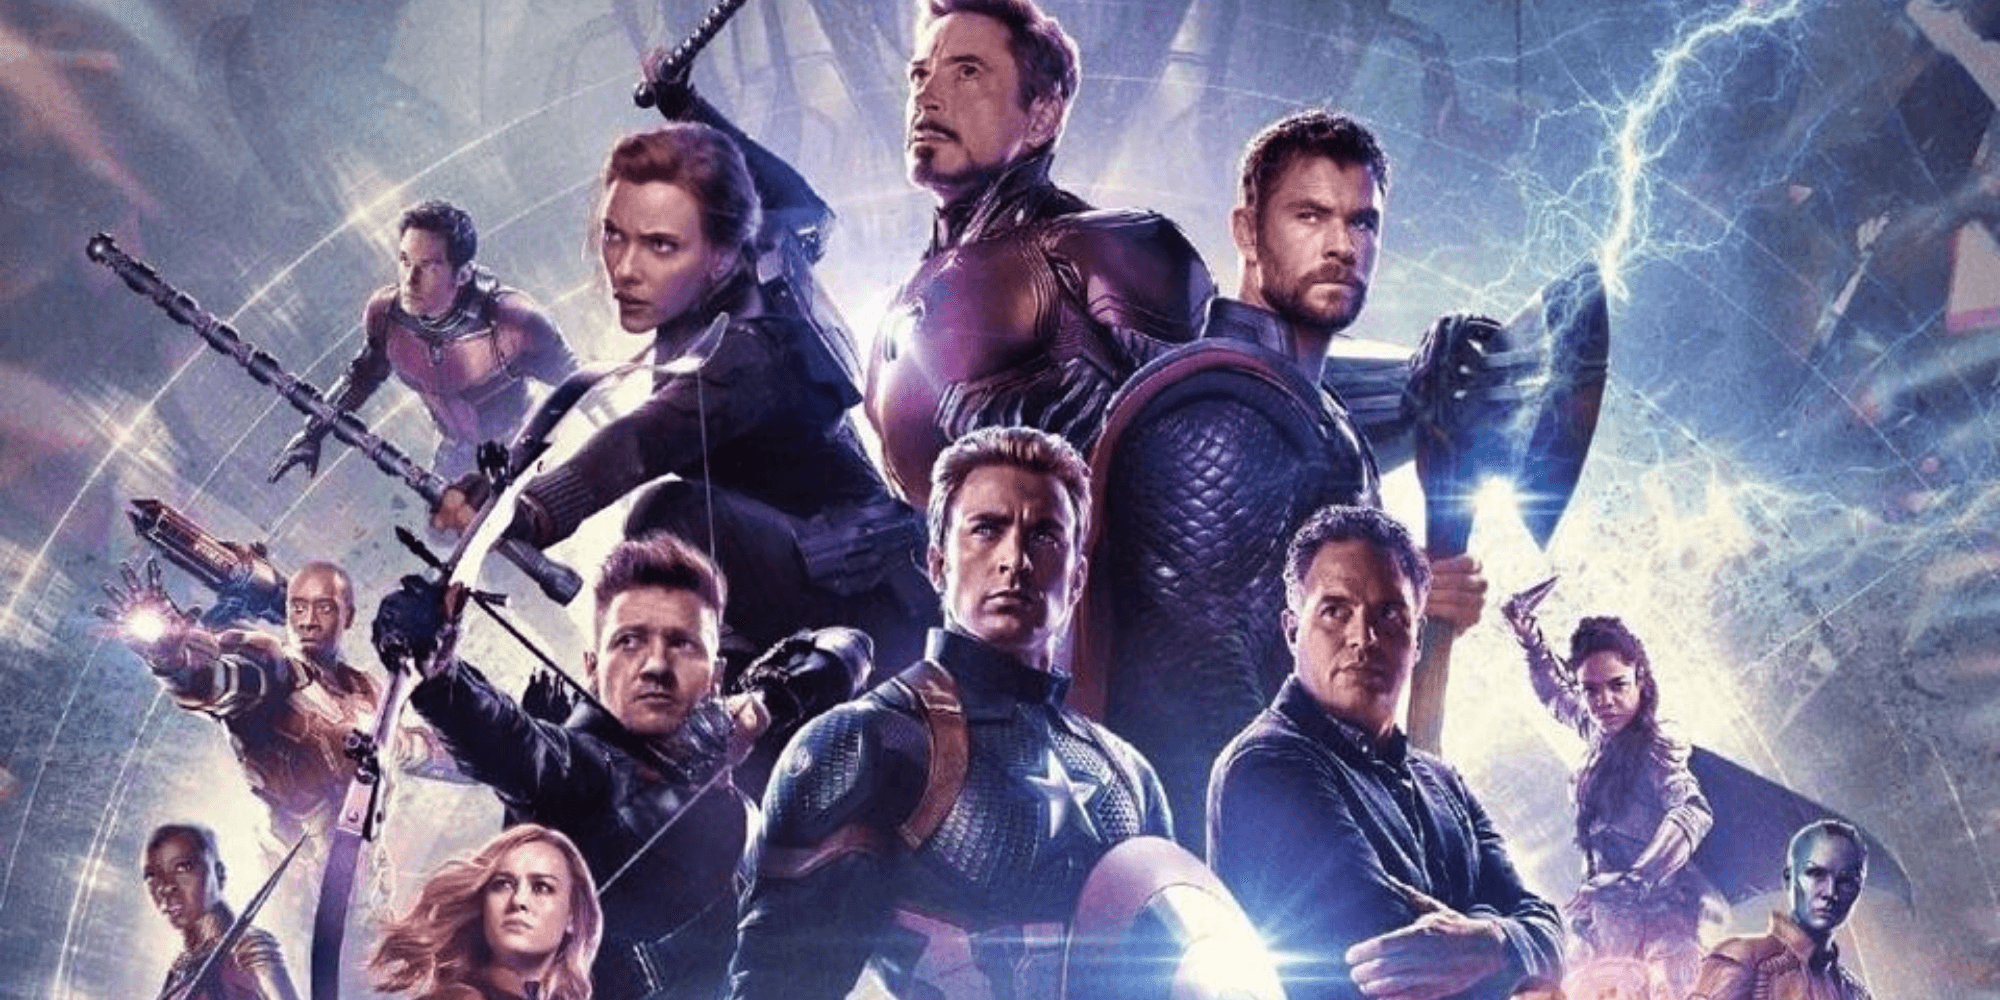 The cast of Avengers, official movie post